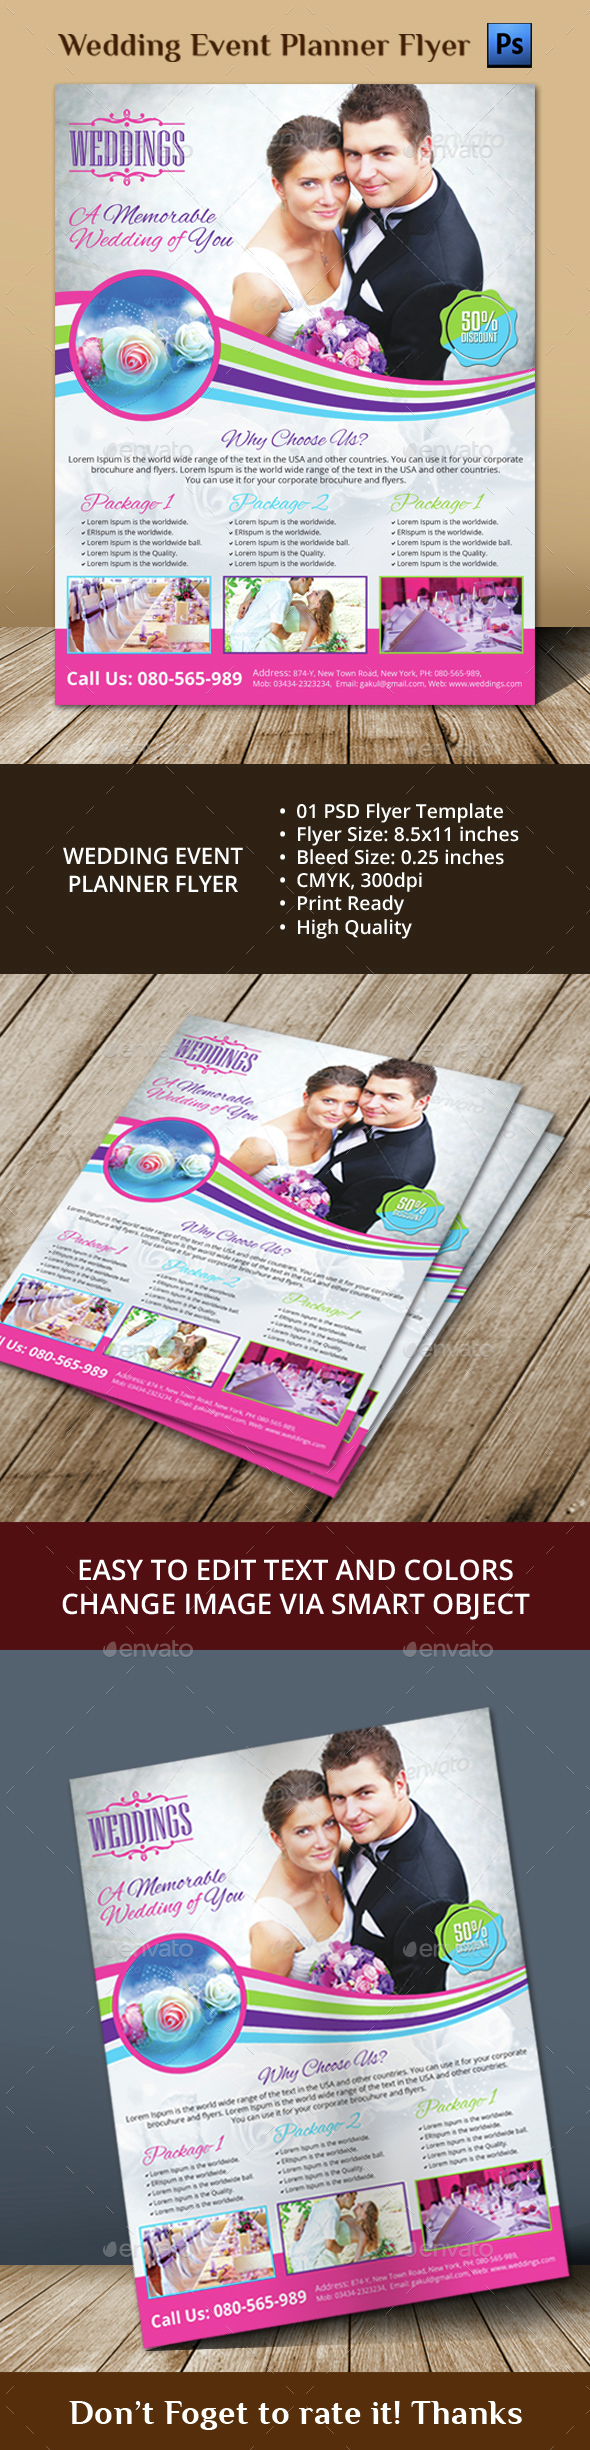 Wedding Event Planner Flyer - Events Flyers